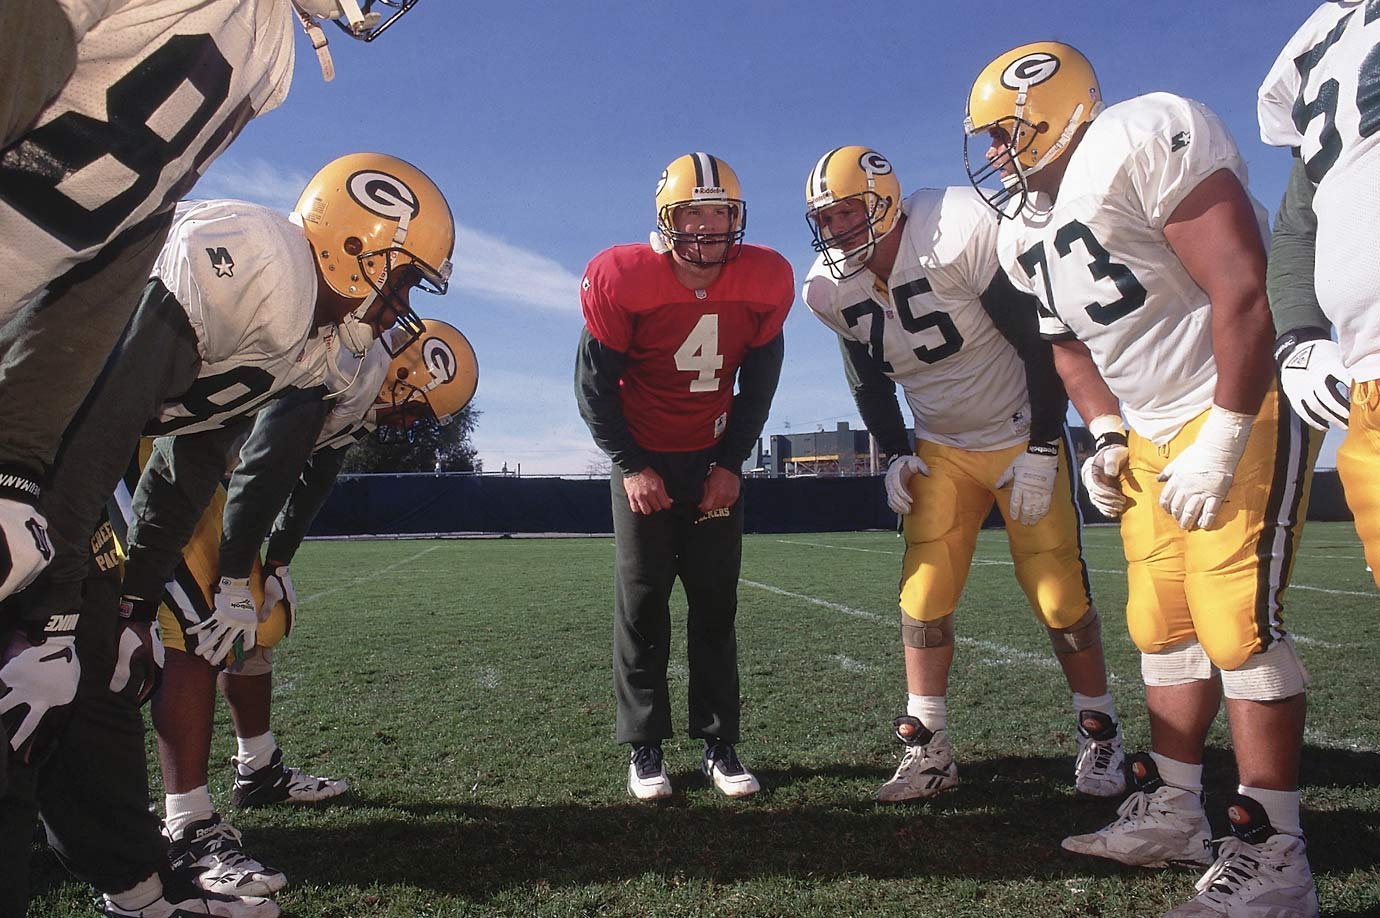 At practice, new arrival Keith Jackson (88) drops in line with the other tight ends in passing drills. Holmgren wanted Favre to help smooth over any anti-Jackson sentiment on the team, since he had been traded to the Packers by the Miami Dolphins in March but refused to report, citing Green Bay's brutal winters.